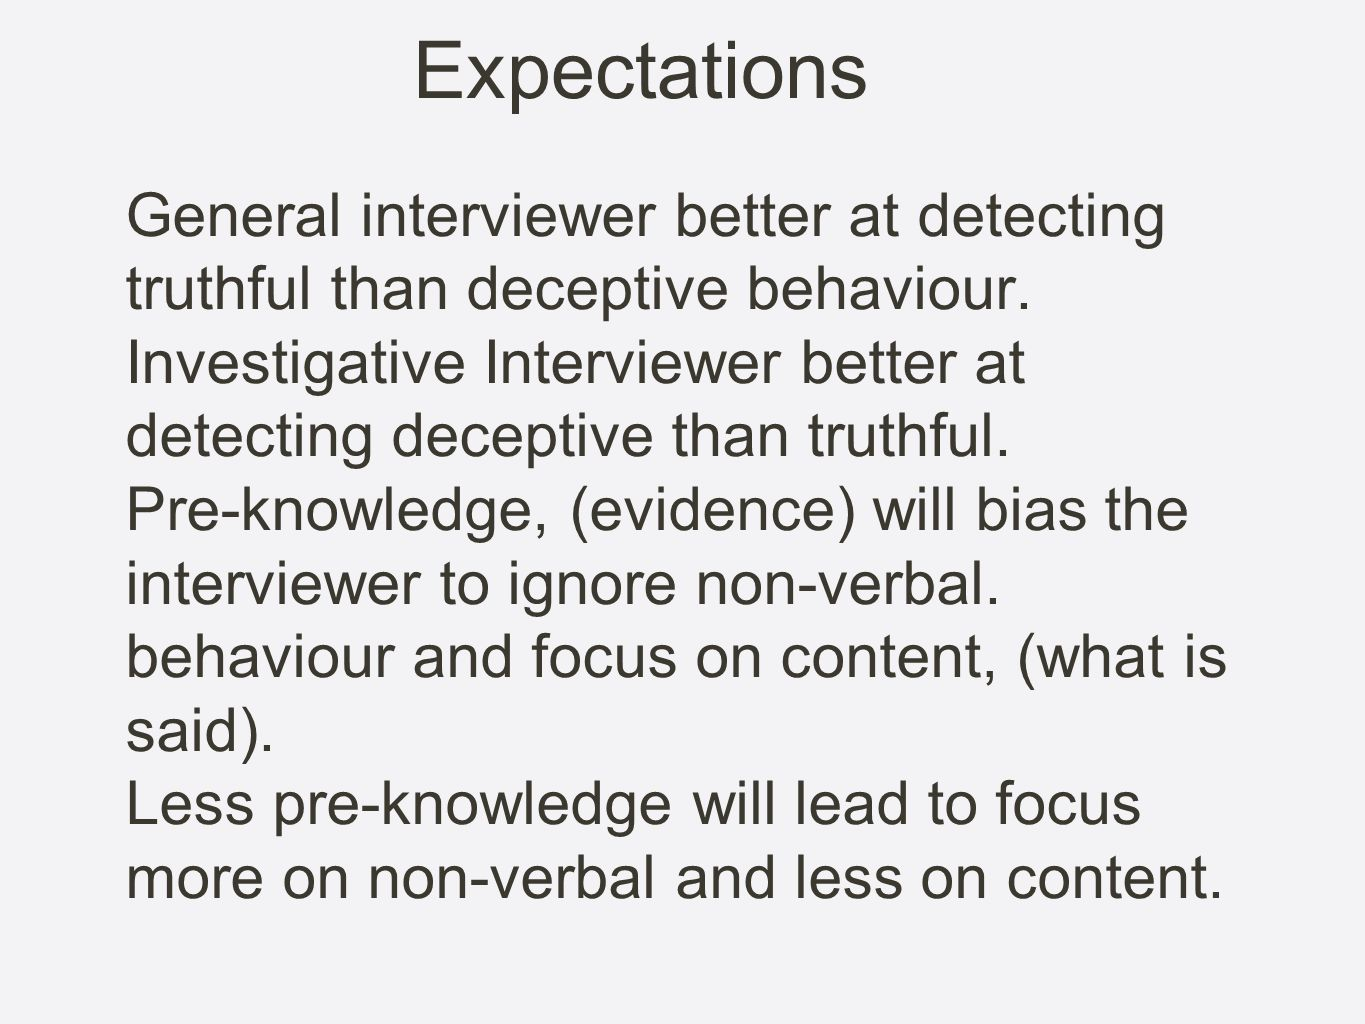 ExpectationsGeneral interviewer better at detecting truthful than deceptive behaviour.